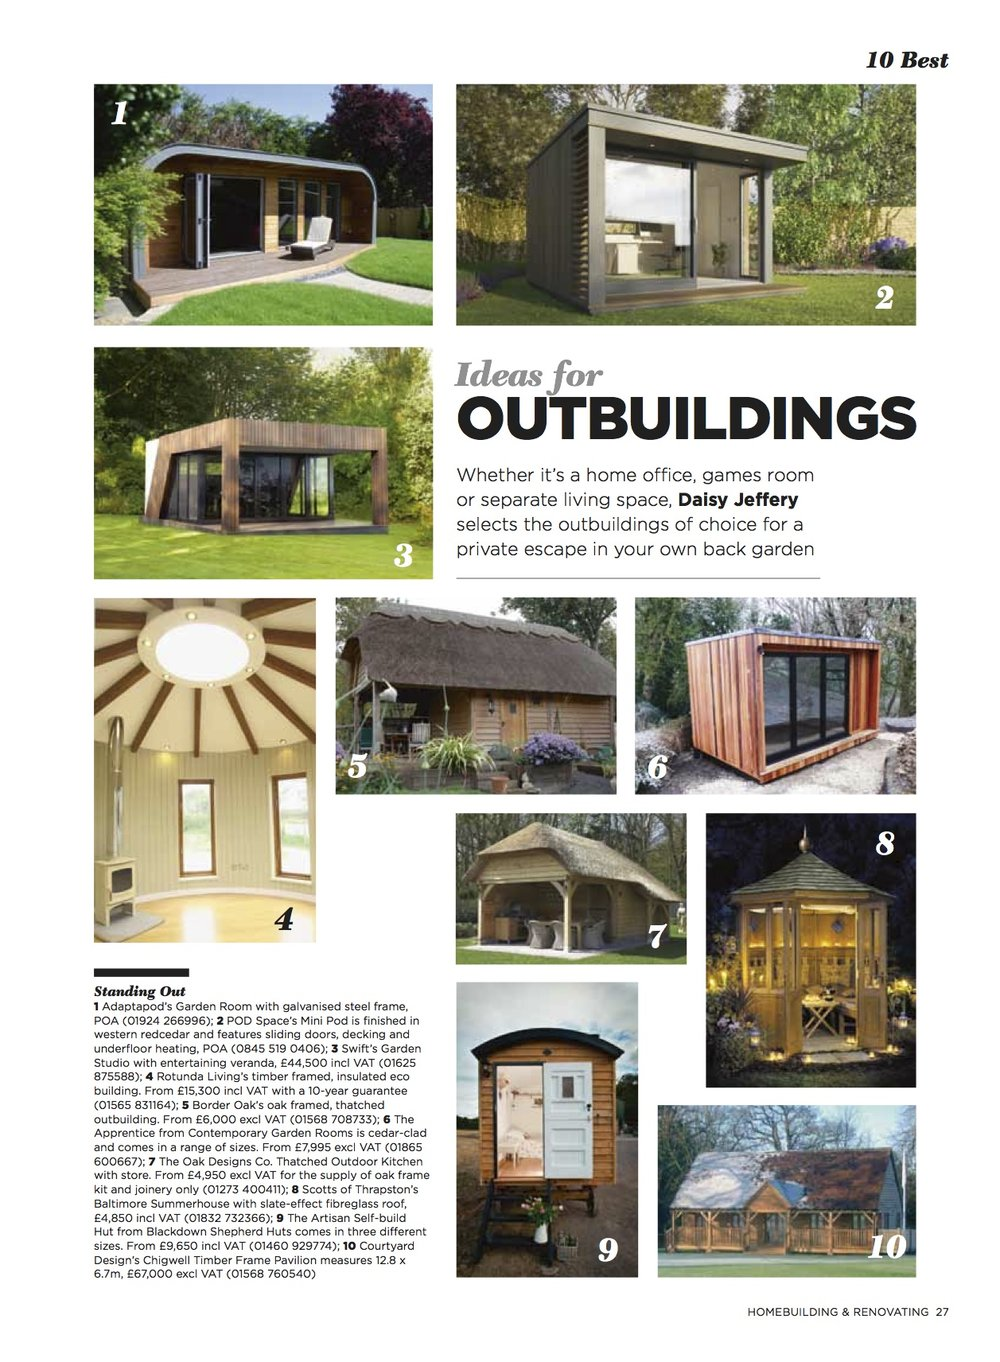 10 Best Outbuildings (1).jpg